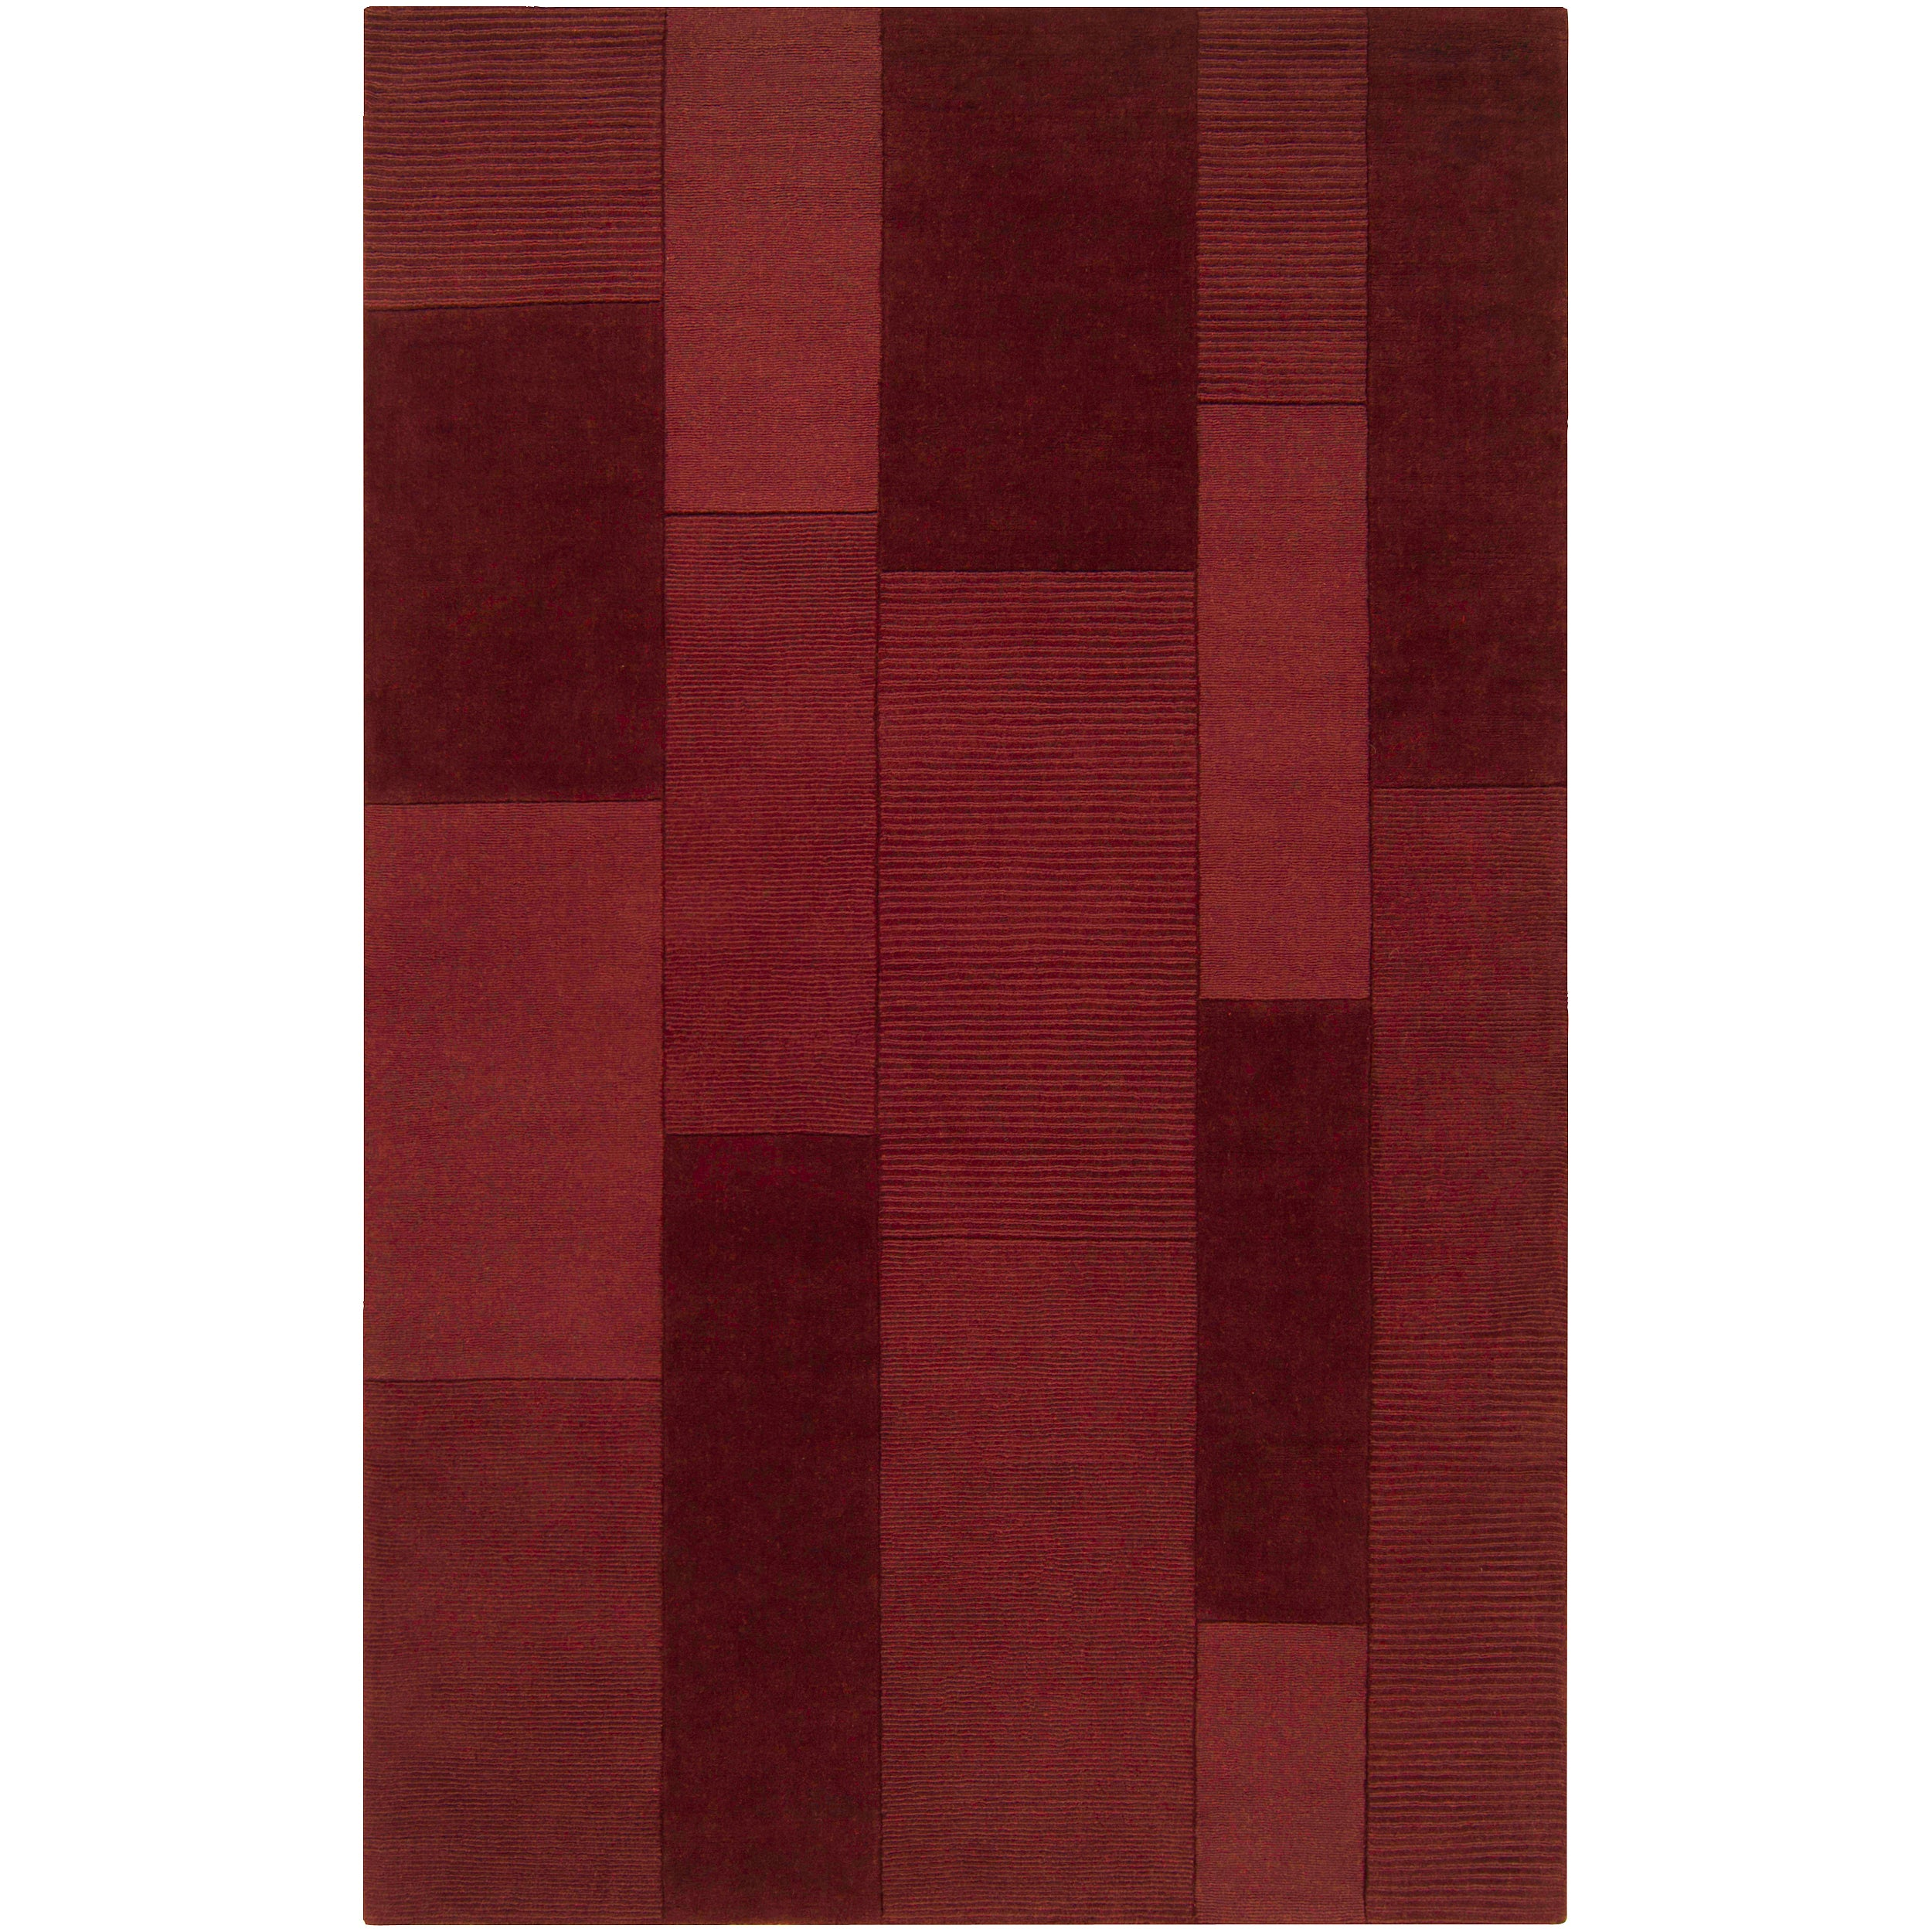 Hand-crafted Solid Casual Red Brunson Wool Rug (9' x 12')